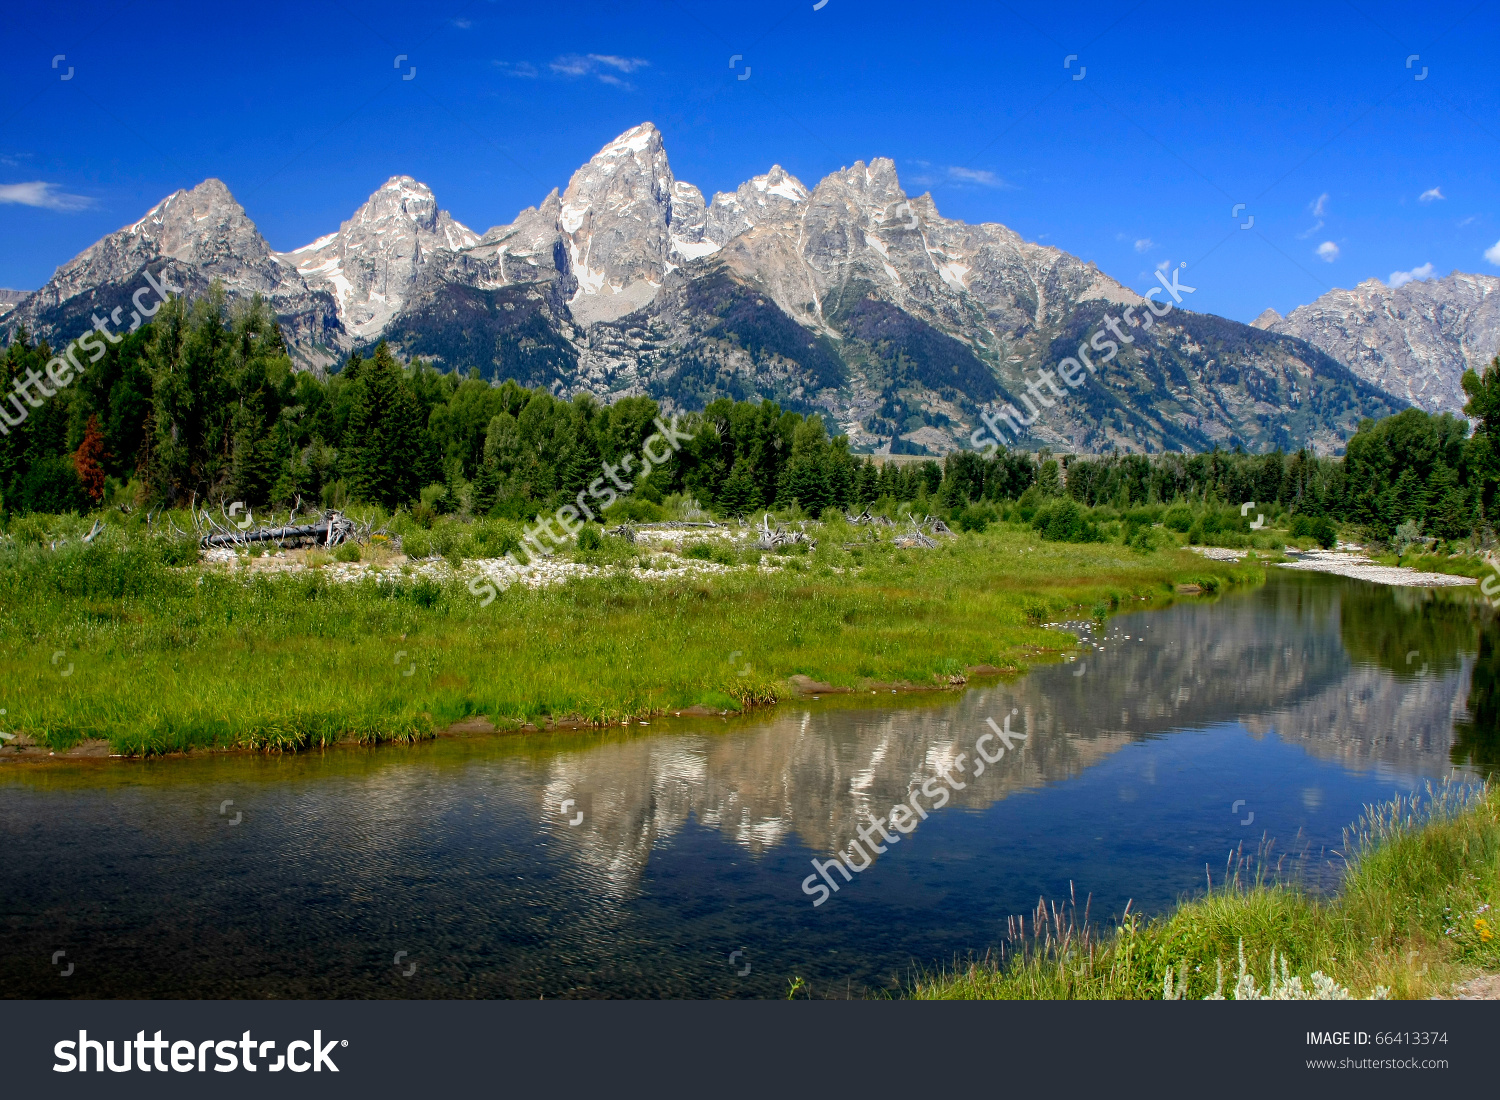 Grand Teton National Park Jackson Wyoming Stock Photo 66413374.